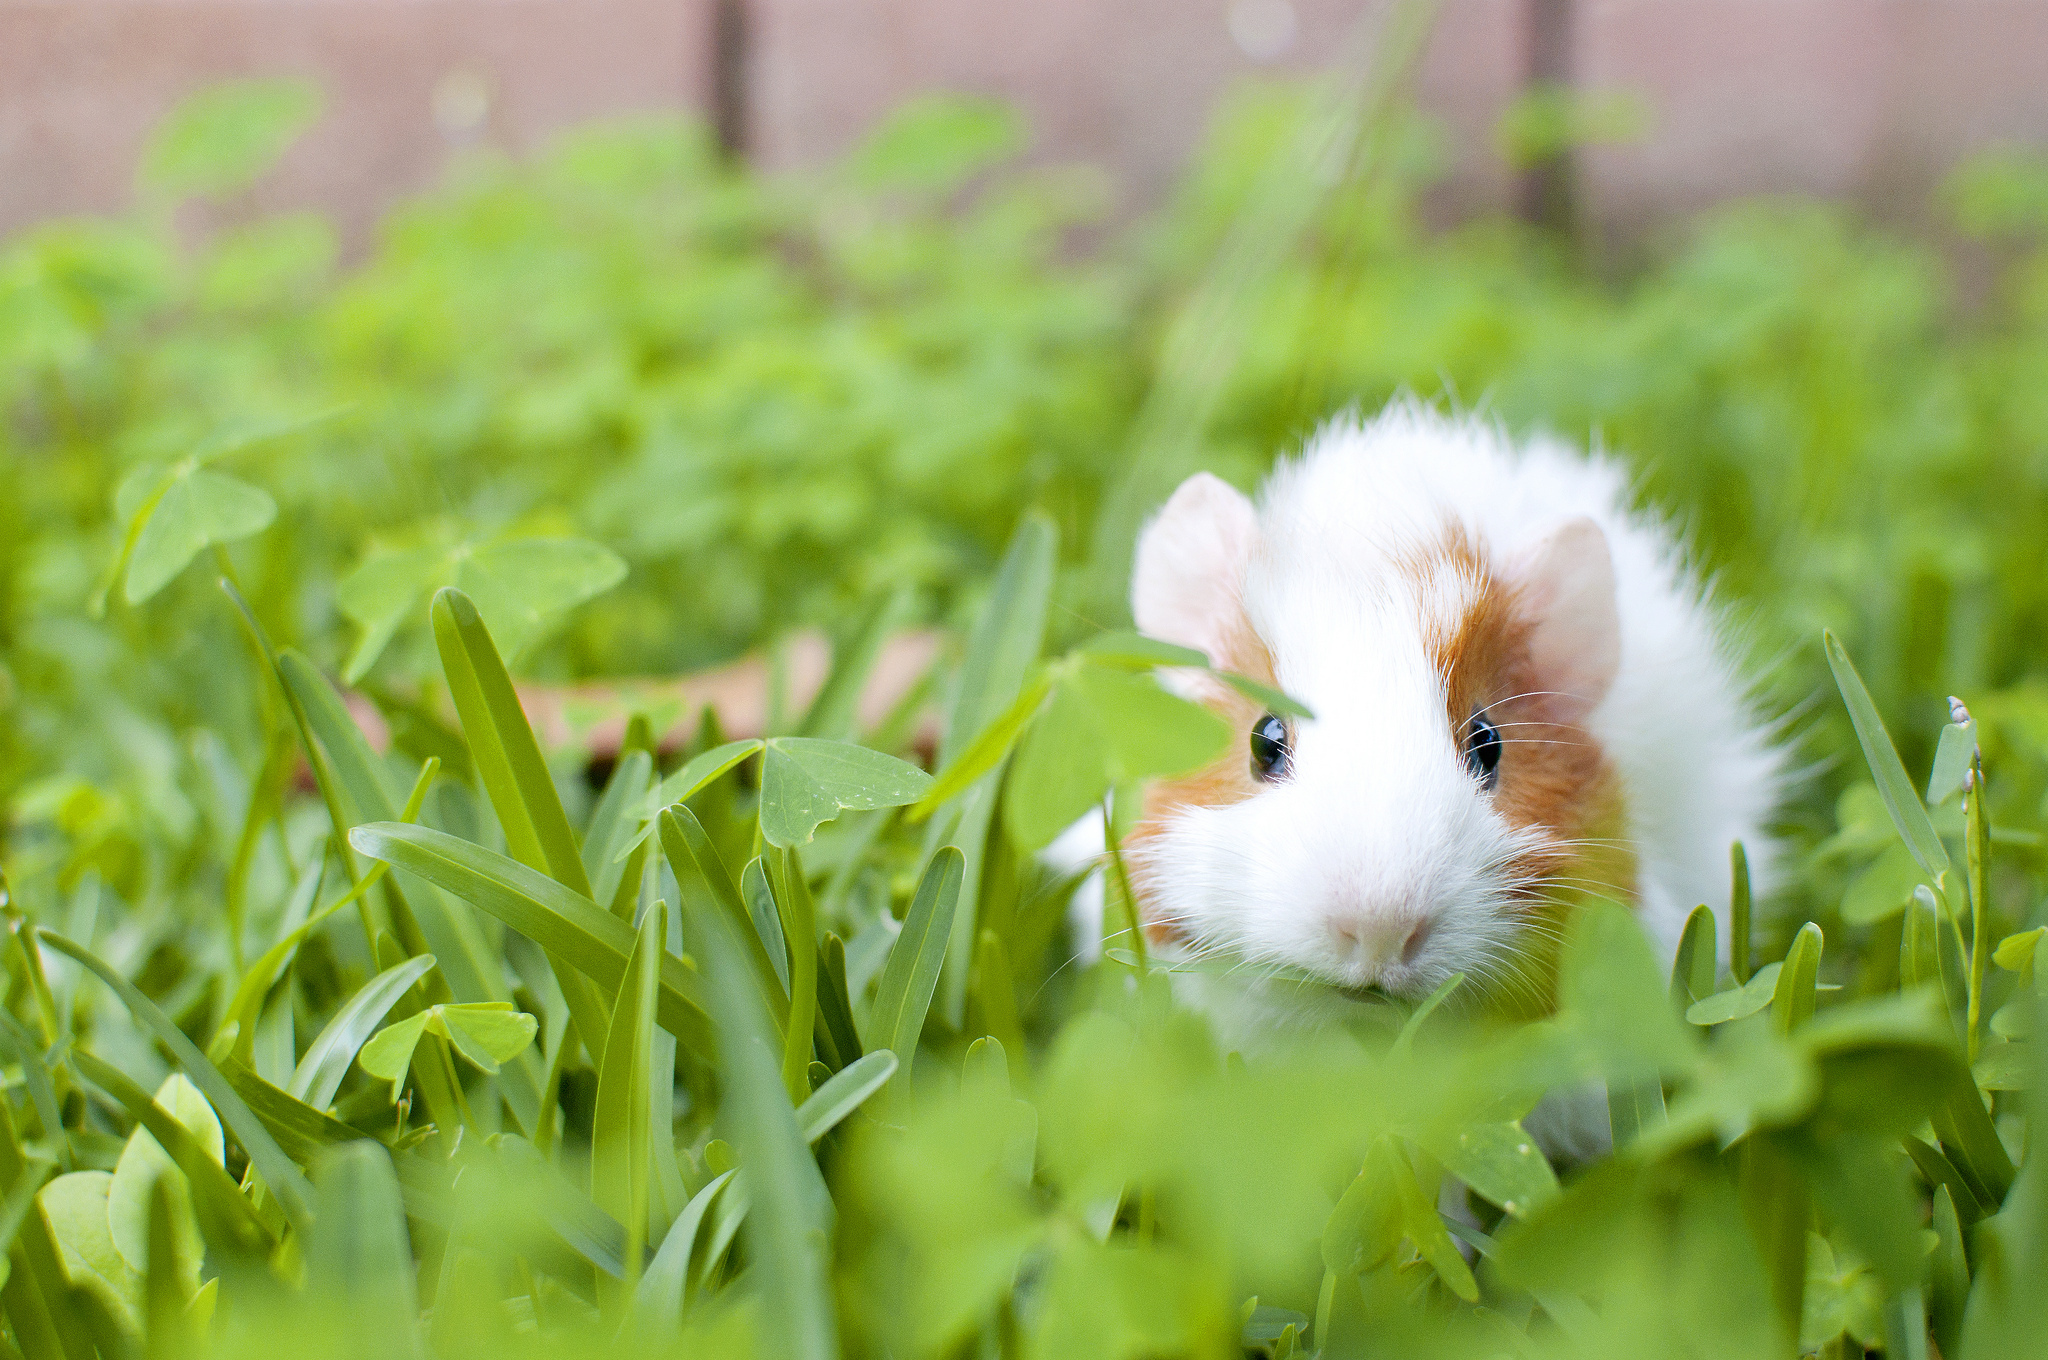 81797 download wallpaper Animals, Guinea Pig, Animal, Rodent, Grass screensavers and pictures for free